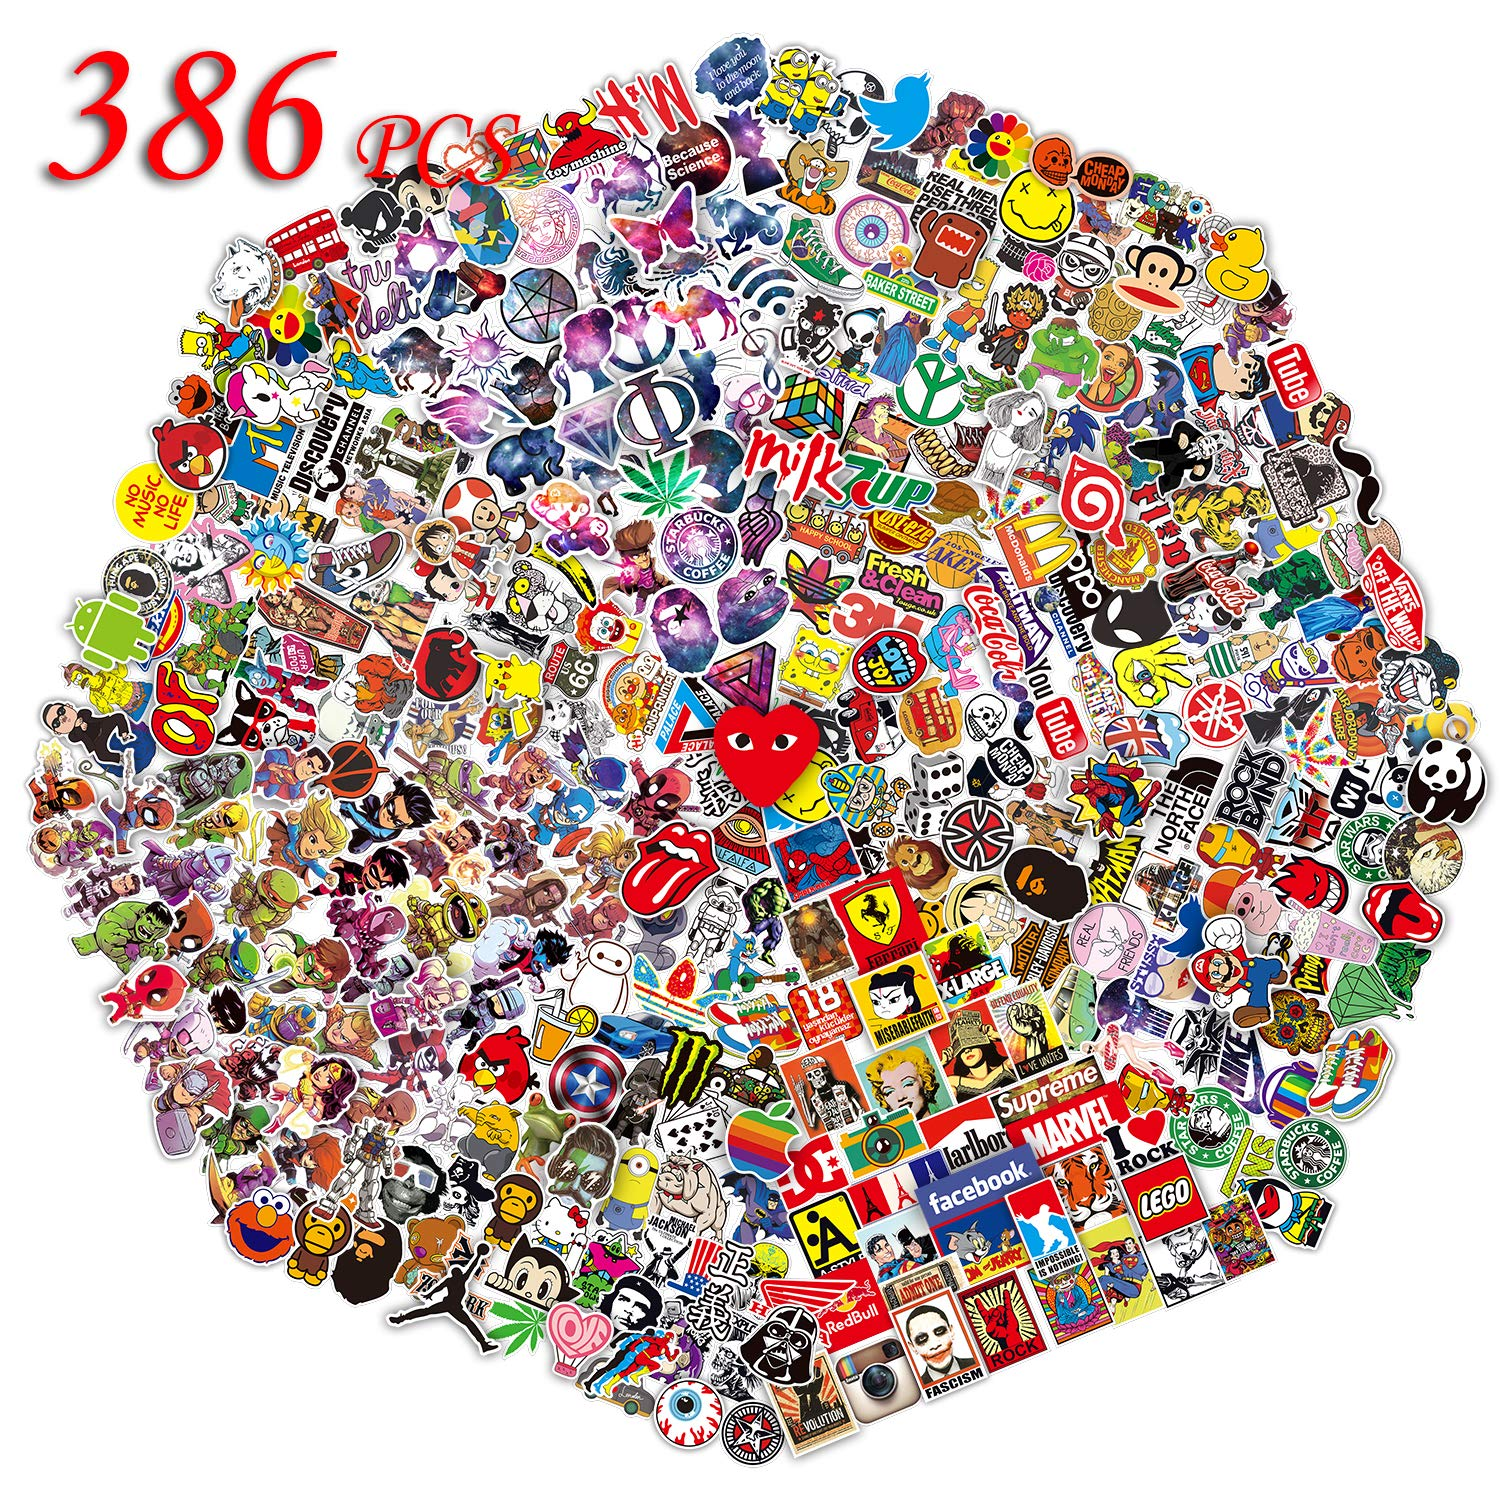 Qwddeco sticker pack 386 pcs vinyl kawaii decal stickers for laptopluggagewallskateboardbikeps4xbox oneiphonecar party favors for kidsadults